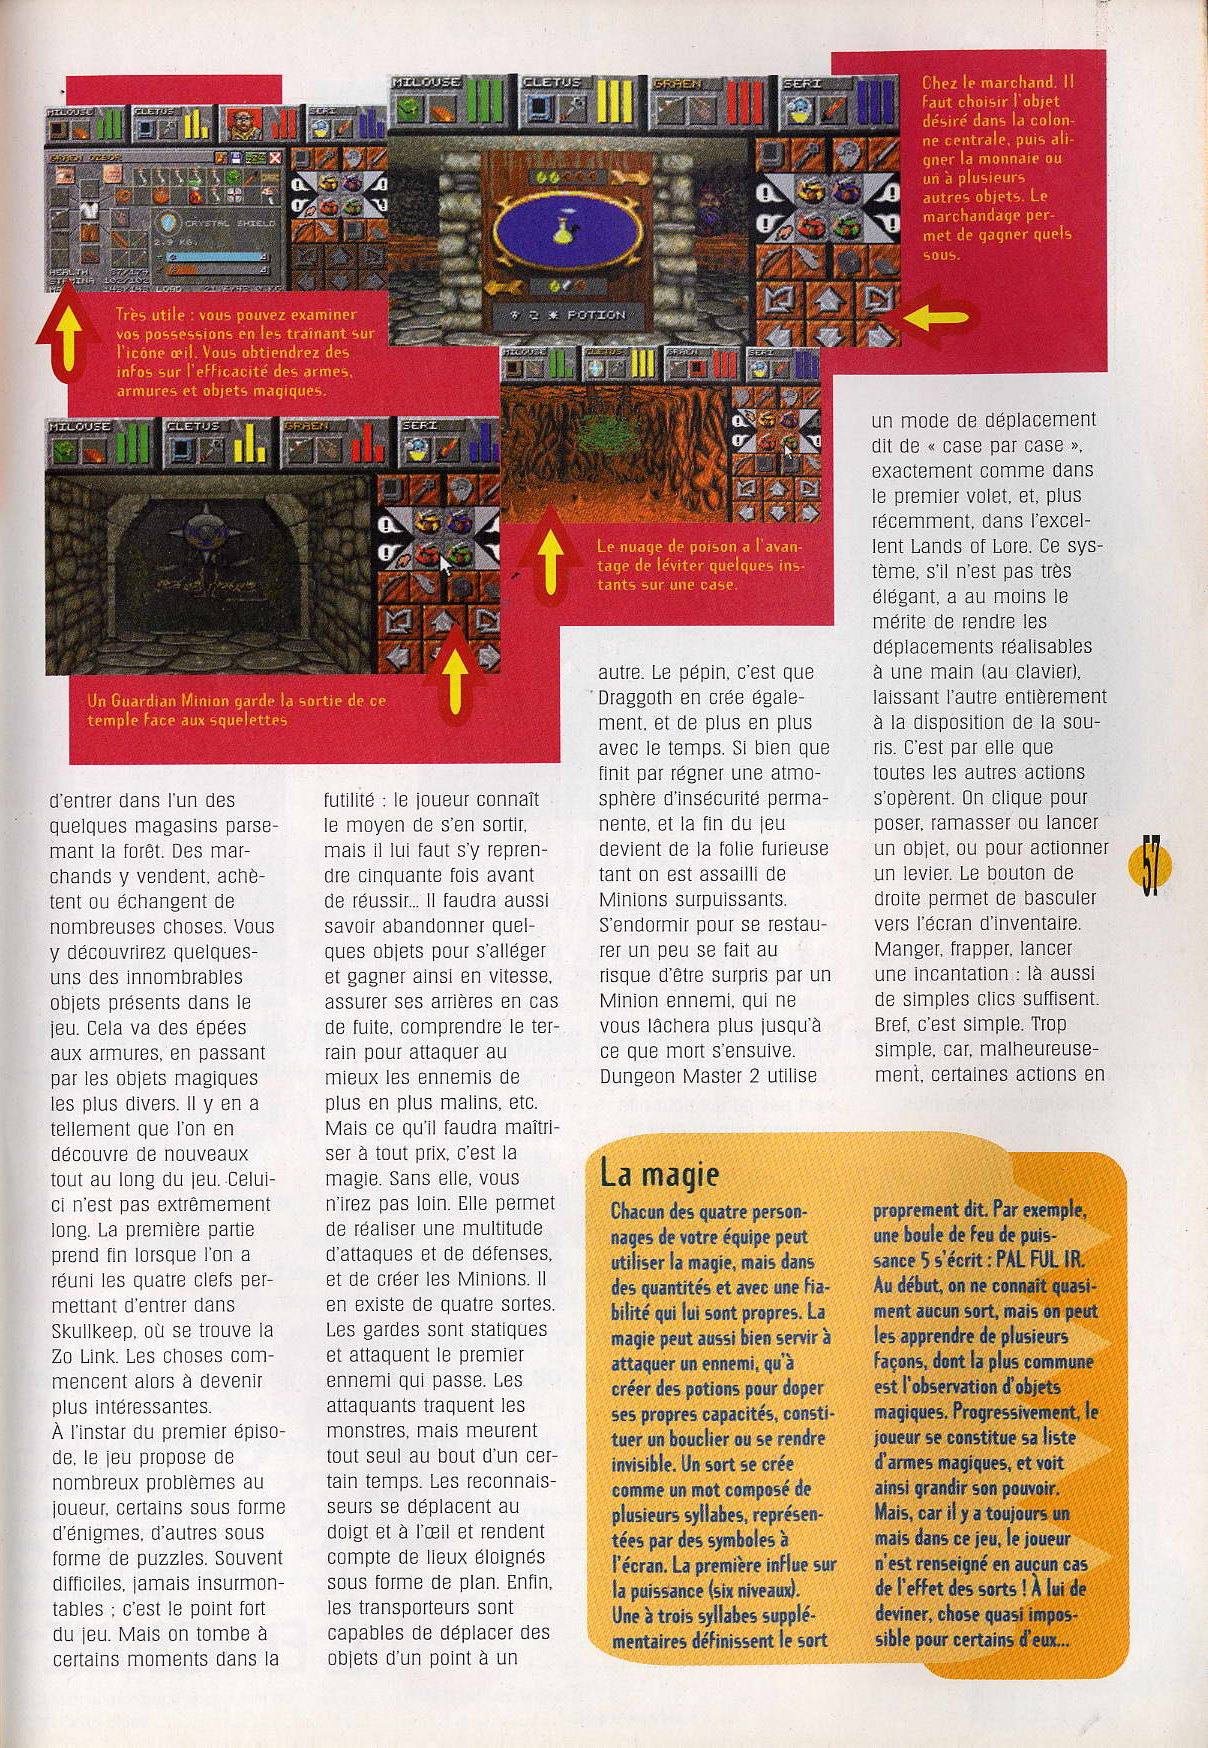 Dungeon Master II for PC Review published in French magazine 'Multimedia PC Player', Issue #24 September 1995, Page 57